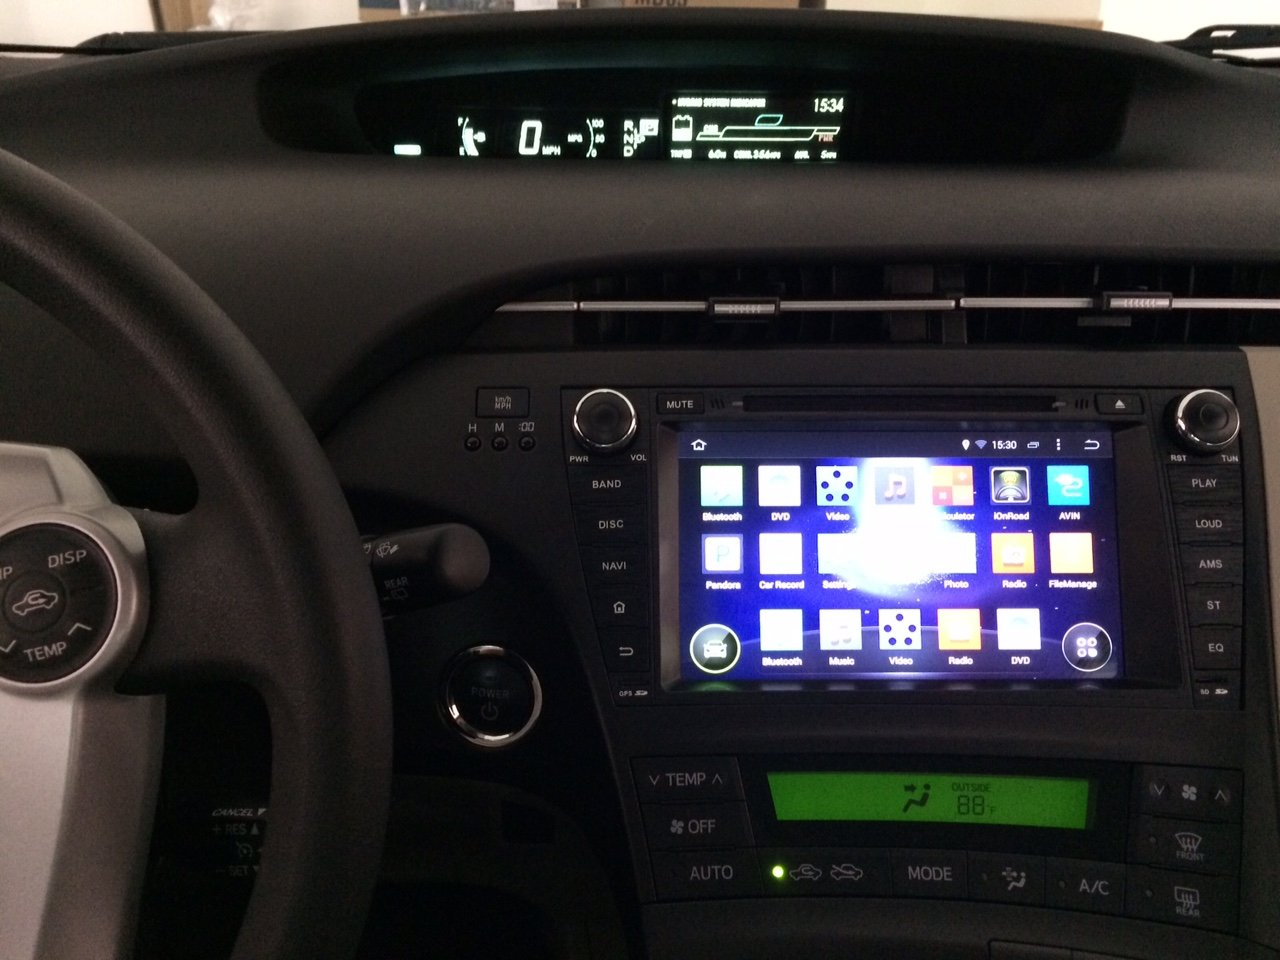 11 Toyota Prius Two with Android 4 4 4 Kit Kat Head unit